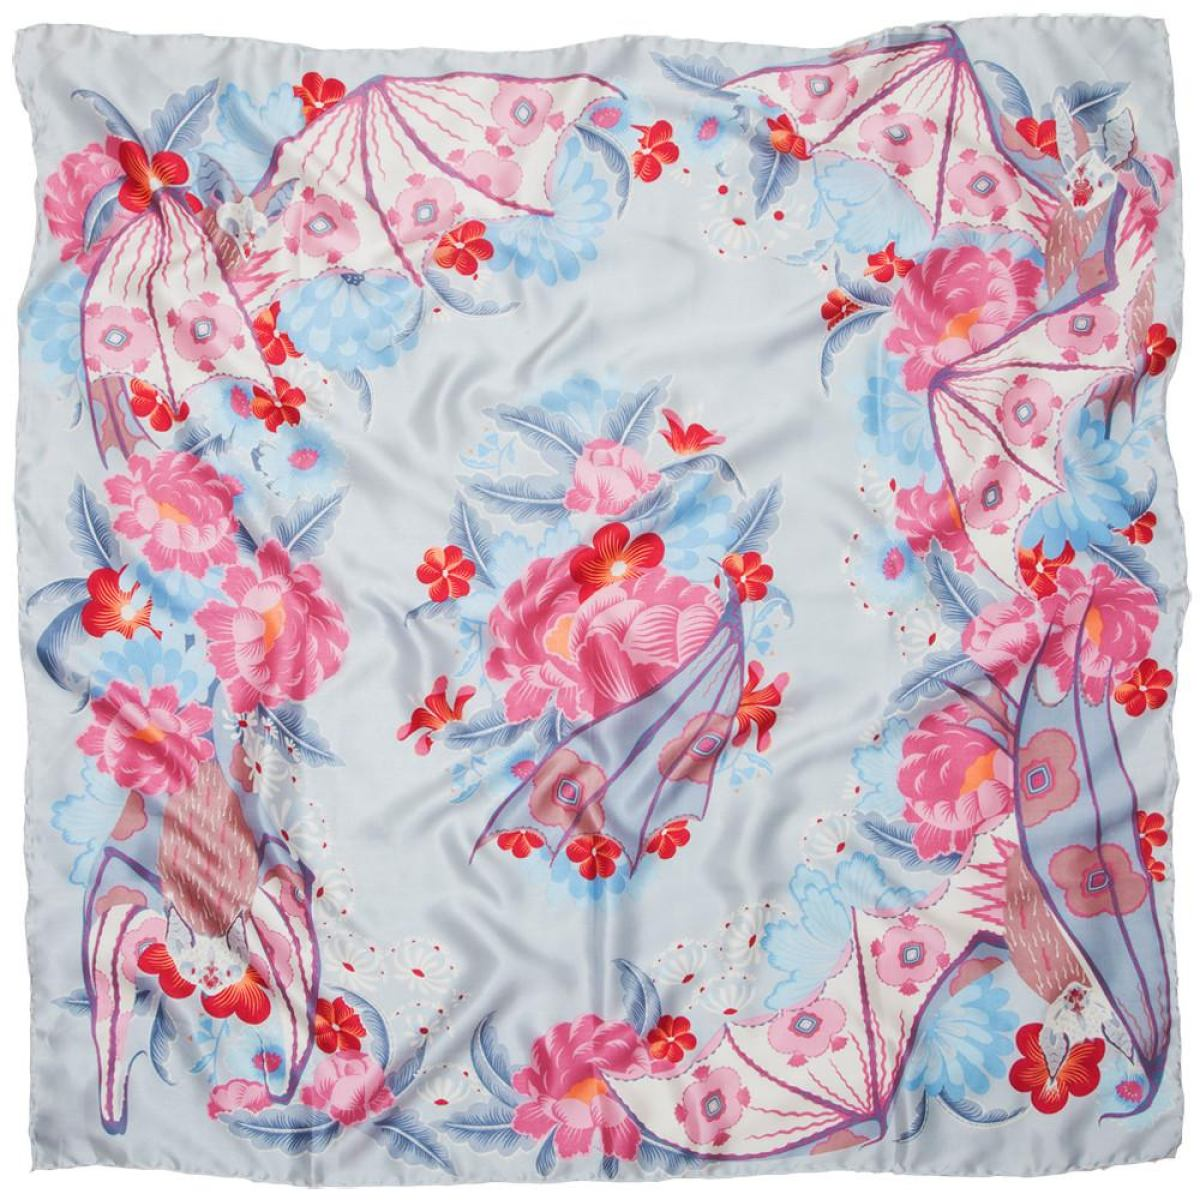 "Scarf with Art Print ""Bat & Flowers"" on Pure Silk Satin"